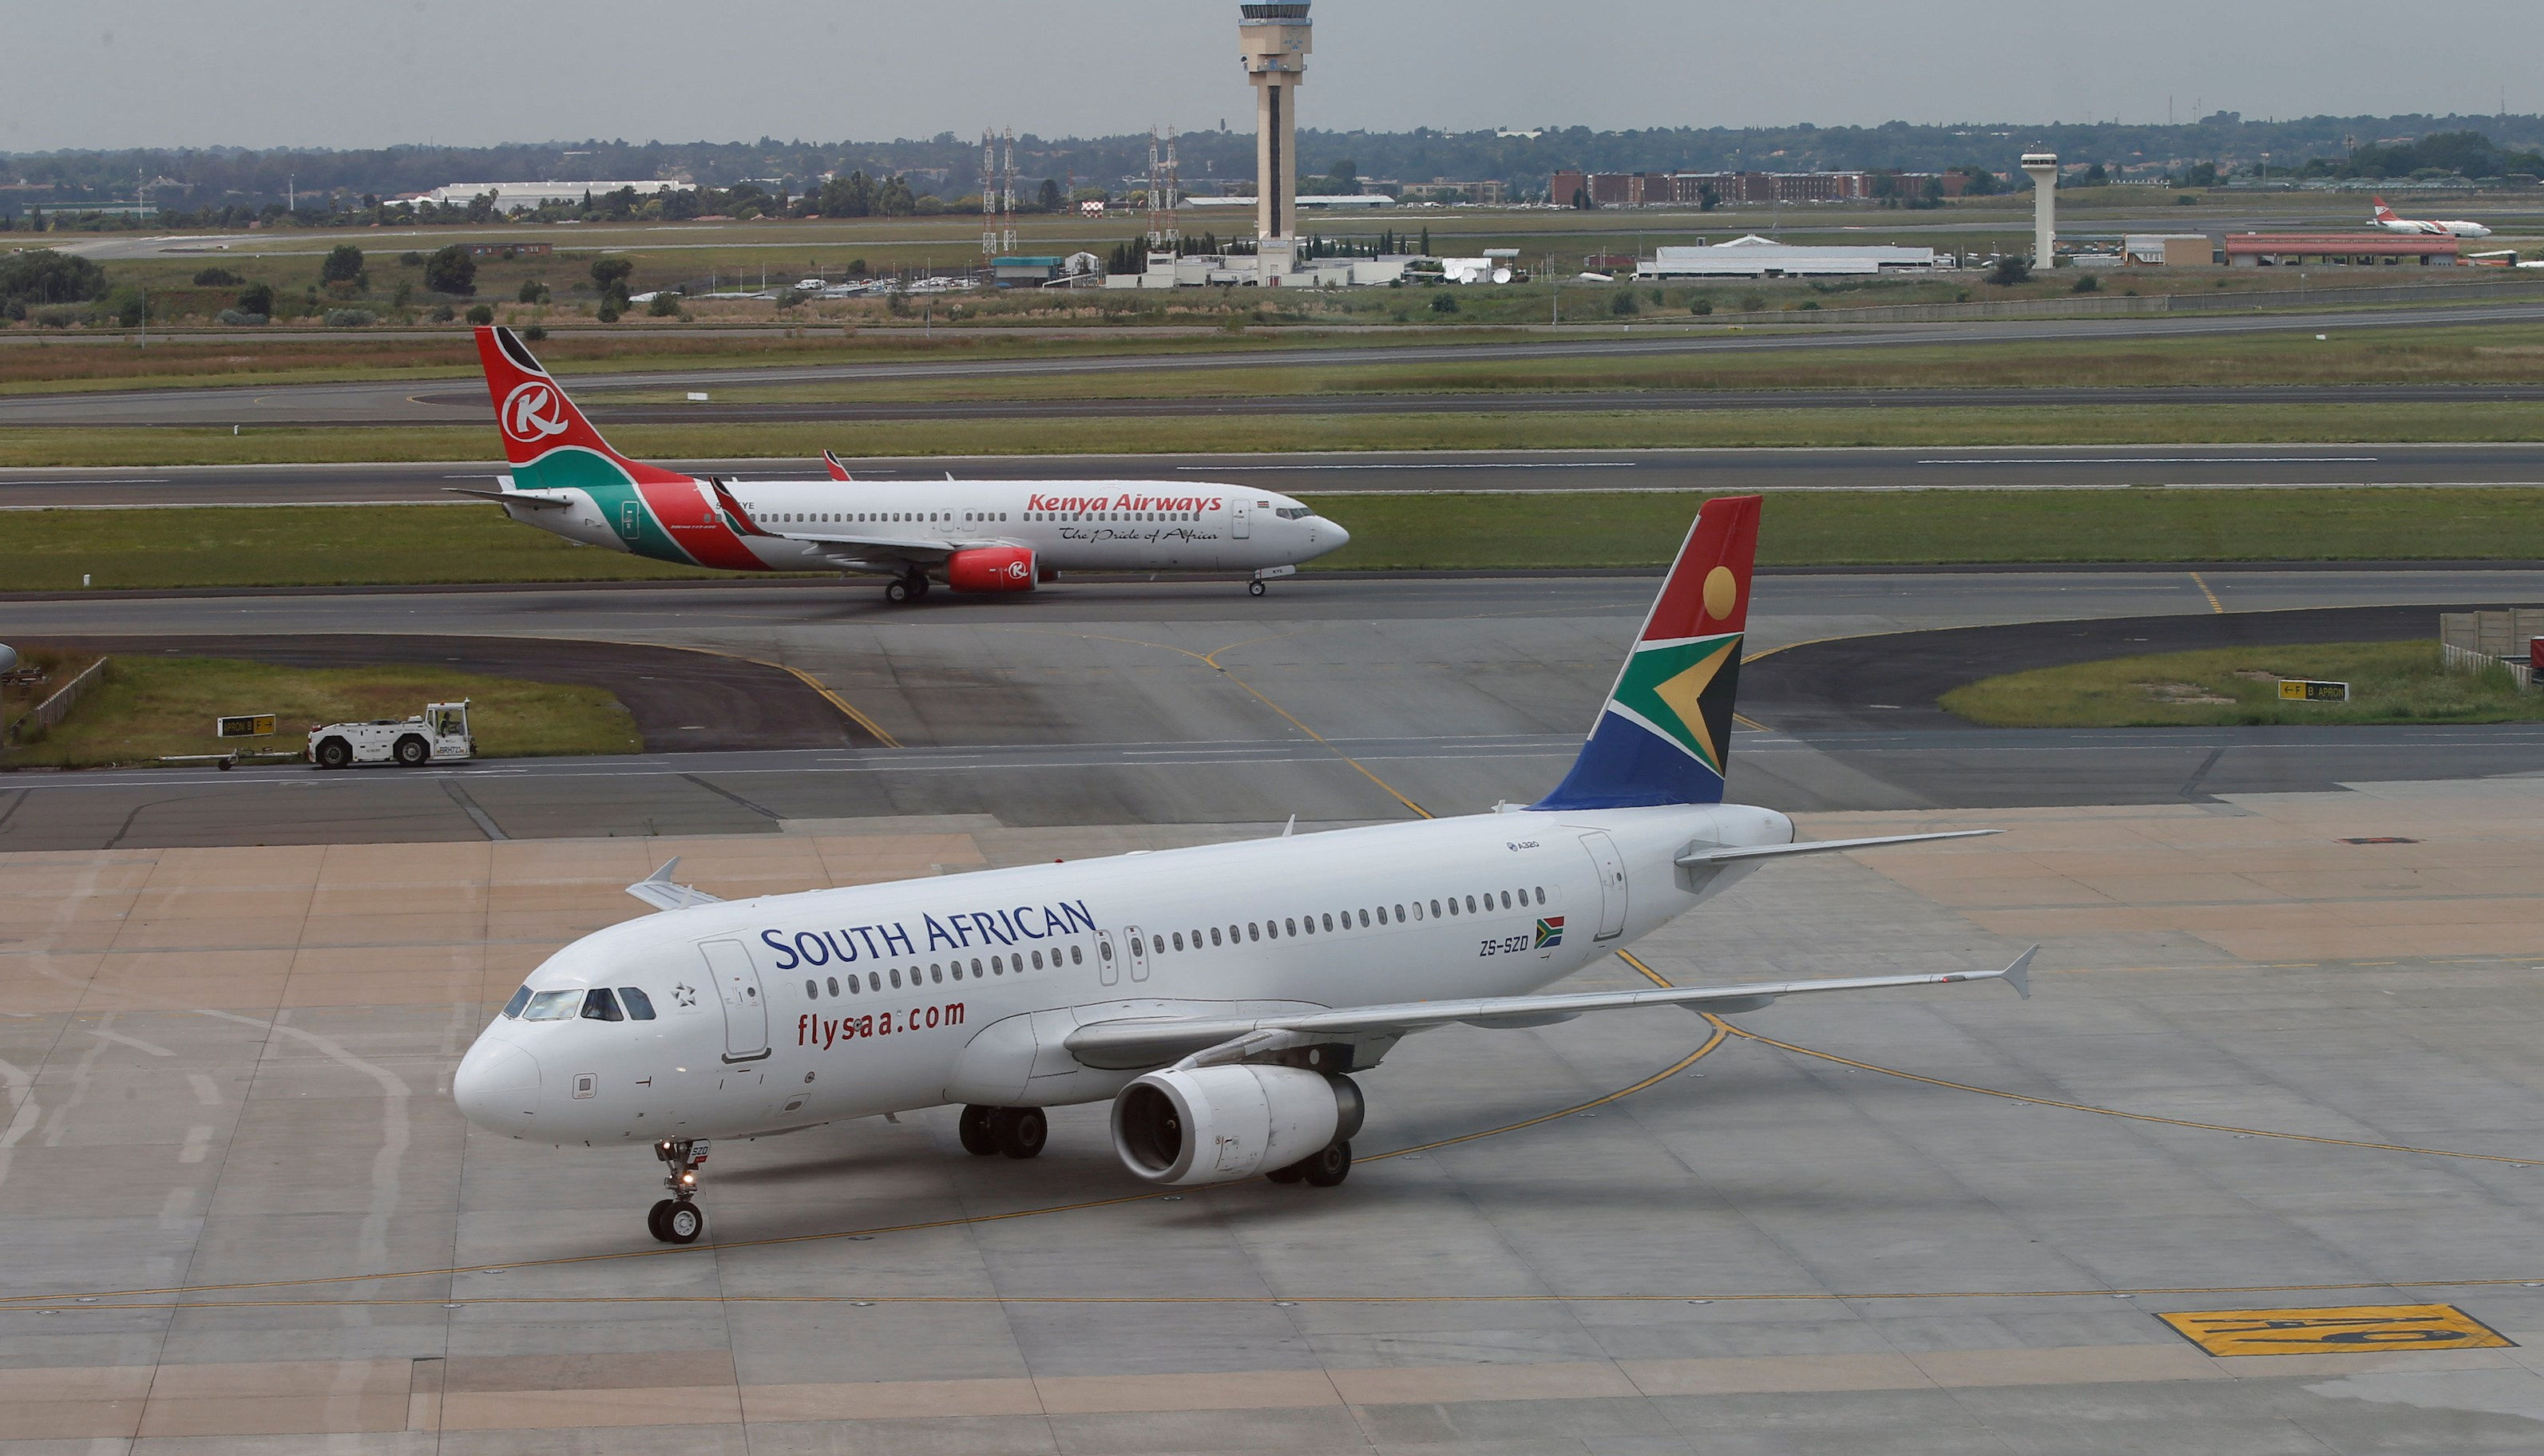 FILE PHOTO: A South African Airways Airbus A320-200 aircraft (bottom) arrives as a Kenya Airways Boeing 737-800 aircraft prepares to take off at the OR Tambo International Airport in Johannesburg, South Africa, March 8, 2017. REUTERS/Siphiwe Sibeko/File Photo - RC1E35E6C420